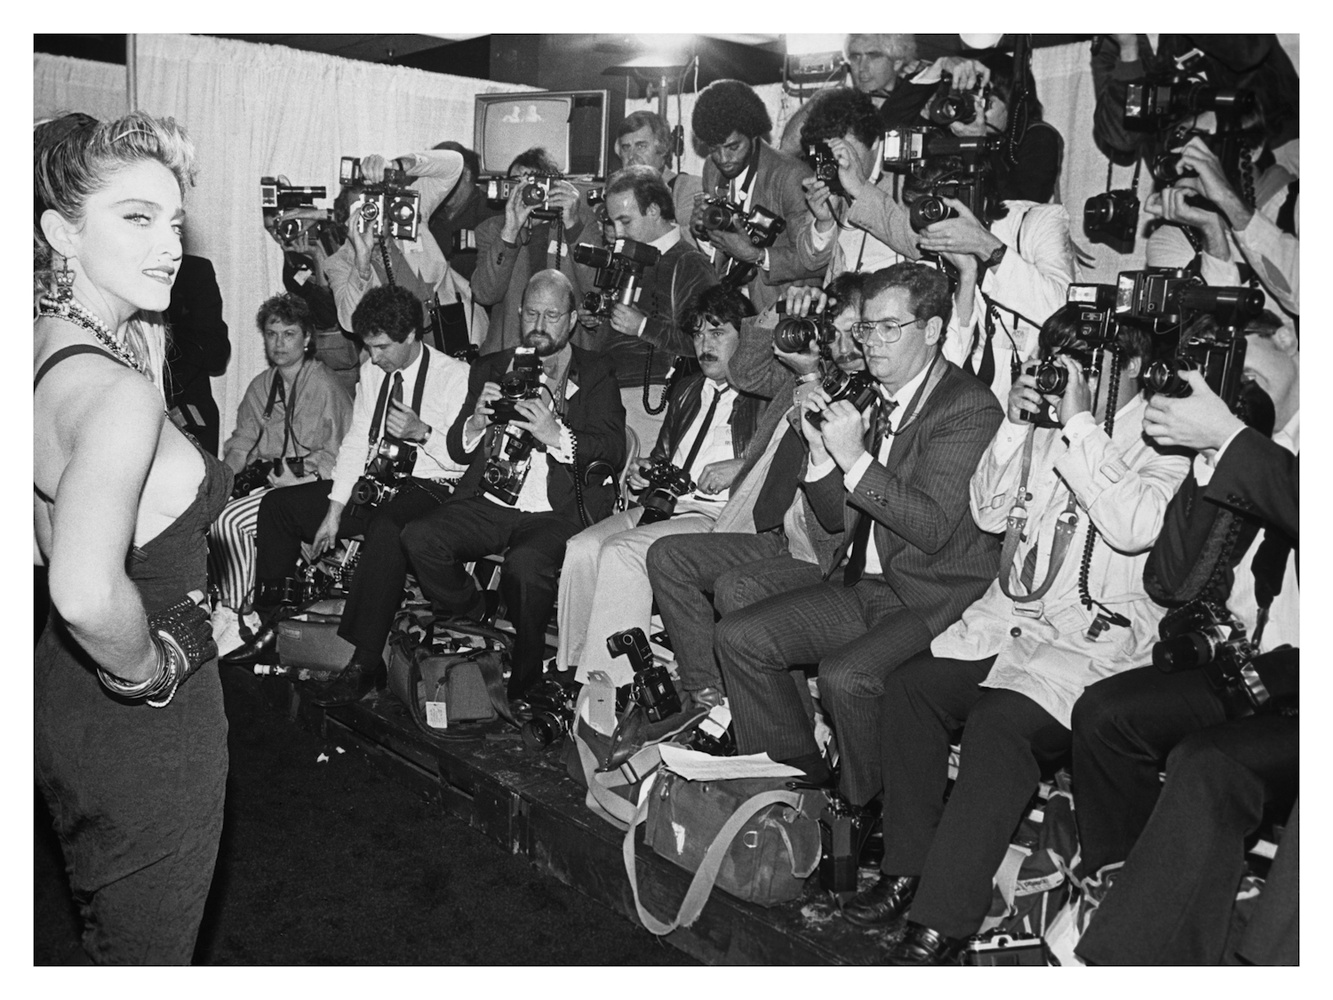 """Madonna Meets The Press, 1982 - Every year, I always hired by Dick Clark to photograph is American Music Awards. This gave to total access everywhere. While all the press were sequestered in the """"Bull Pen"""", I was free to make a creative photograph of this new singer Madonna. When the photo was published all over the world, the publicist expressed his displeasure. He did not care about works or art, all he cared about was DC Productions logo in every photo. Needless to say, every magazine run my Madonna photo. All over the world!"""